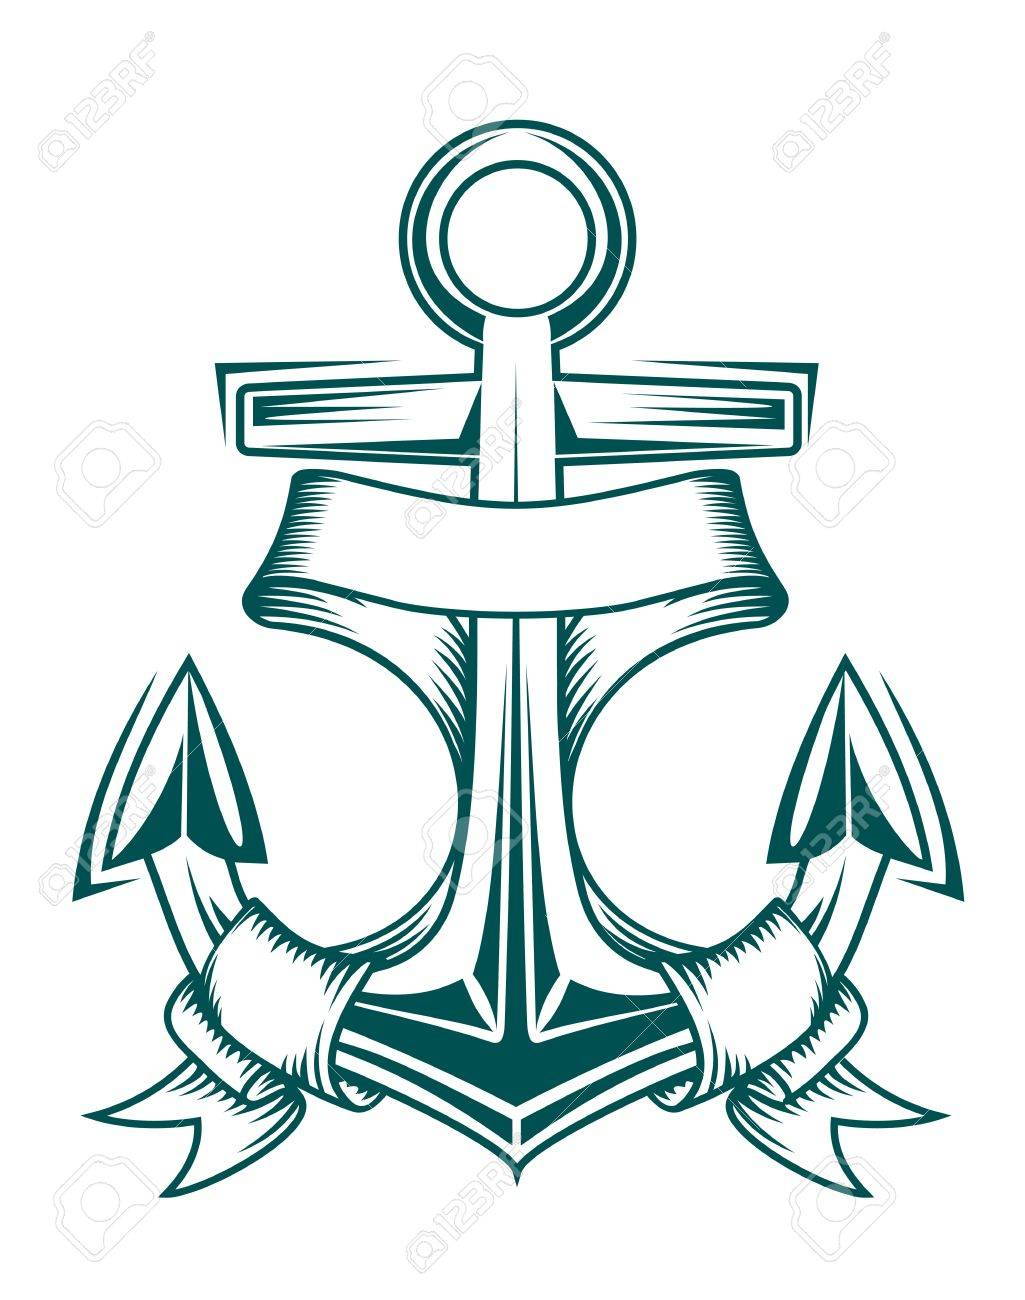 Ancient anchor with ribbons for heraldic design Stock Vector - 10538385